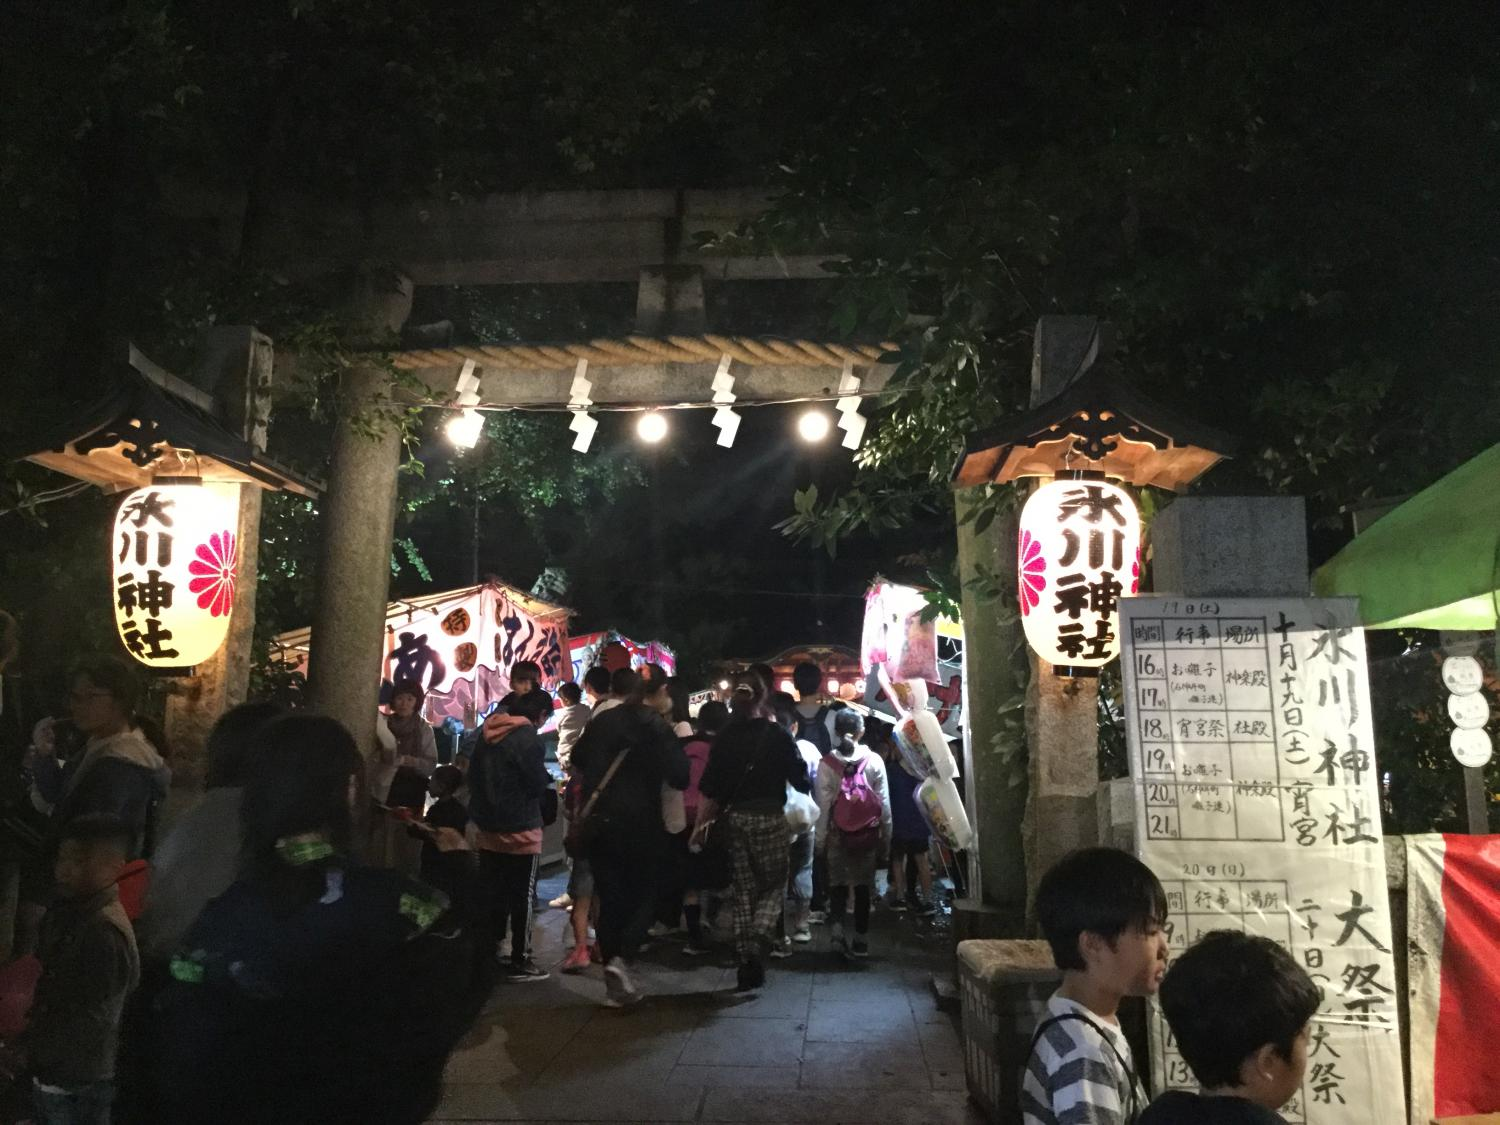 Annual festival of Shakujii Hikawa Shrine